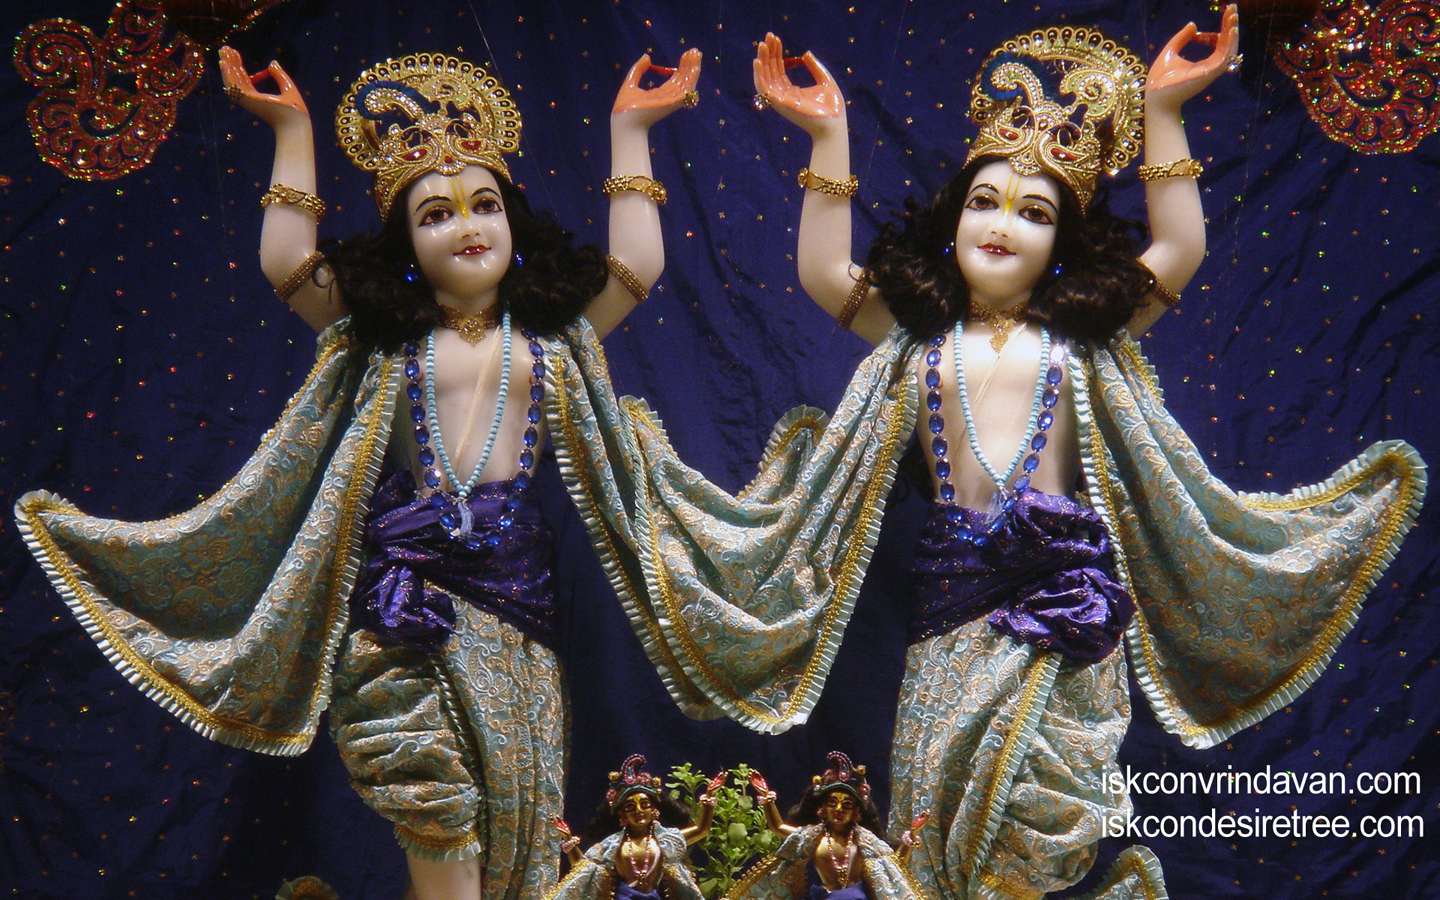 Sri Sri Gaura Nitai Wallpaper (081) Size 1440x900 Download